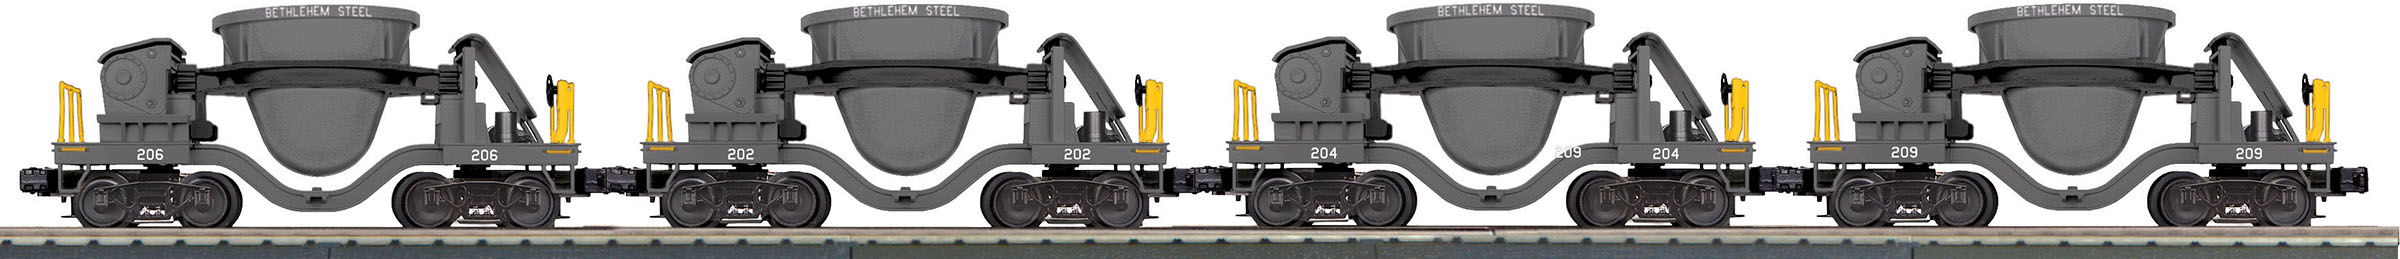 MTH3070103 MTH Electric Trains O-27 4-Car Slag Set, BSCX #209